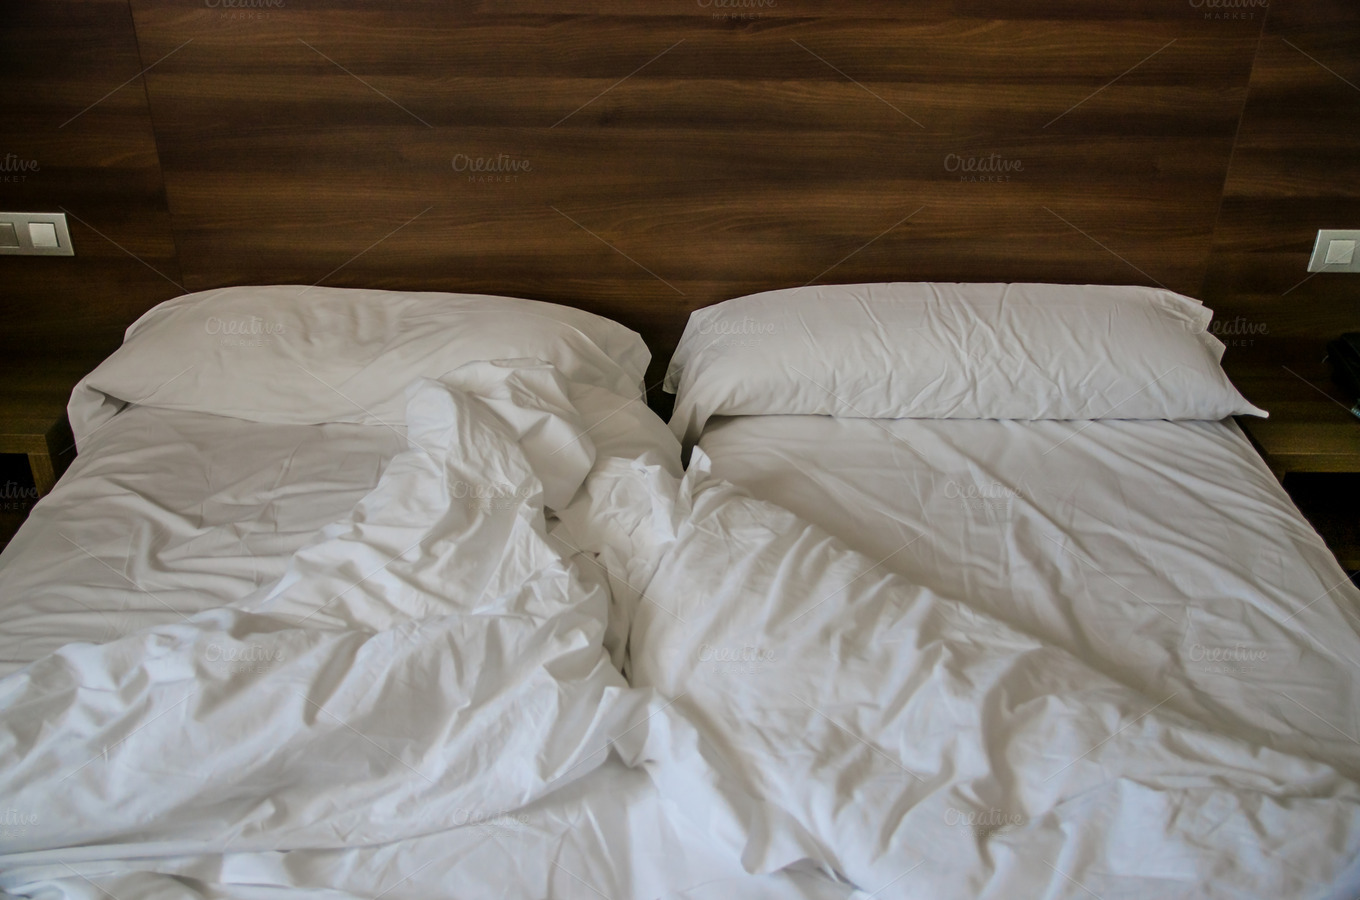 Empty Messy Bed Abstract Photos On Creative Market